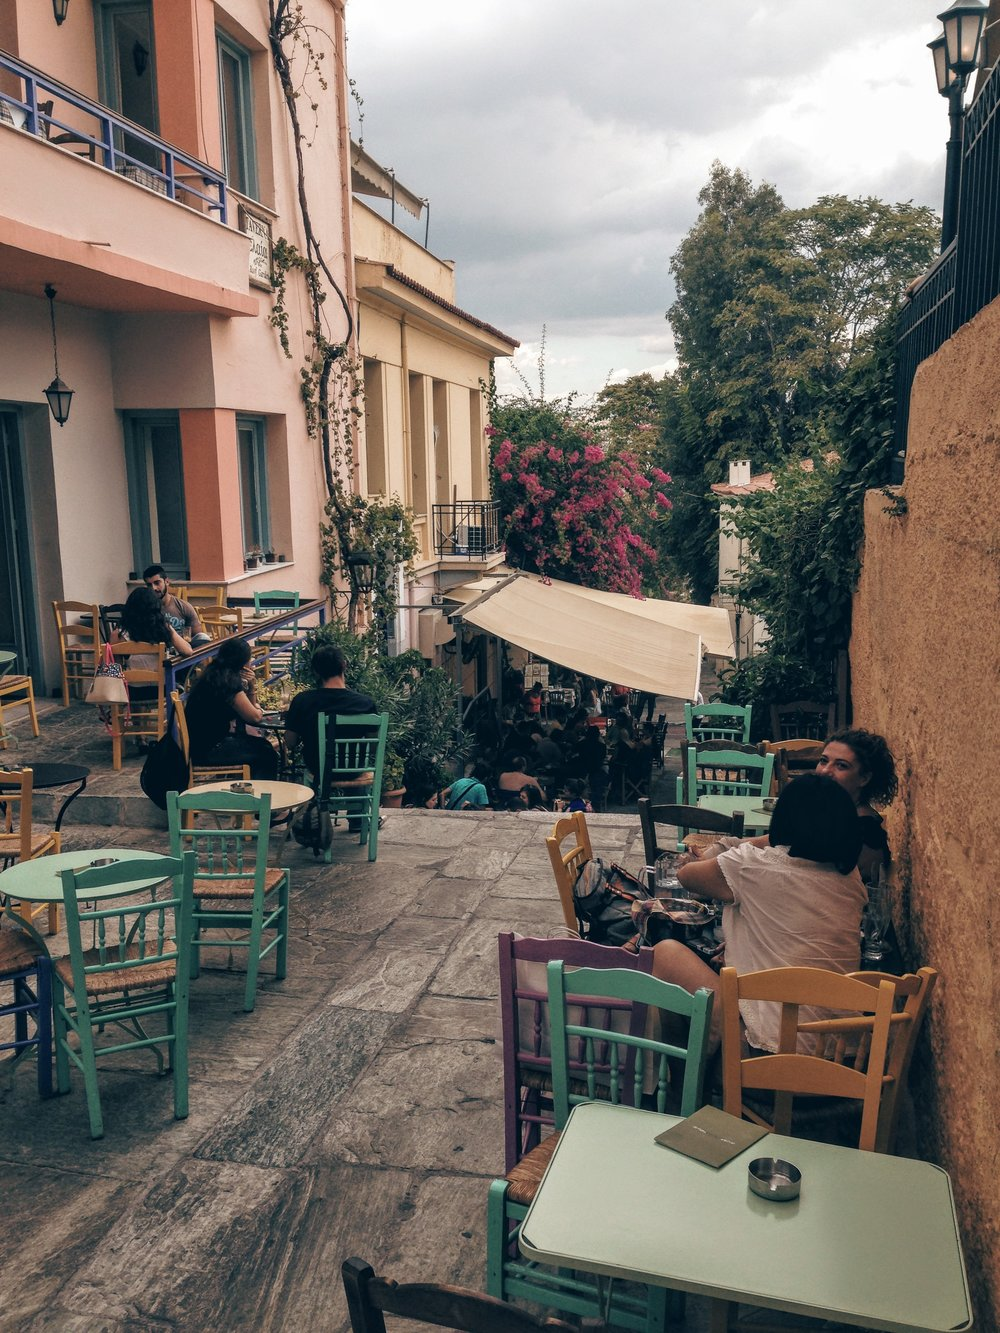 Coffee shops catering mostly to youngsters at Anafiotika in Plaka